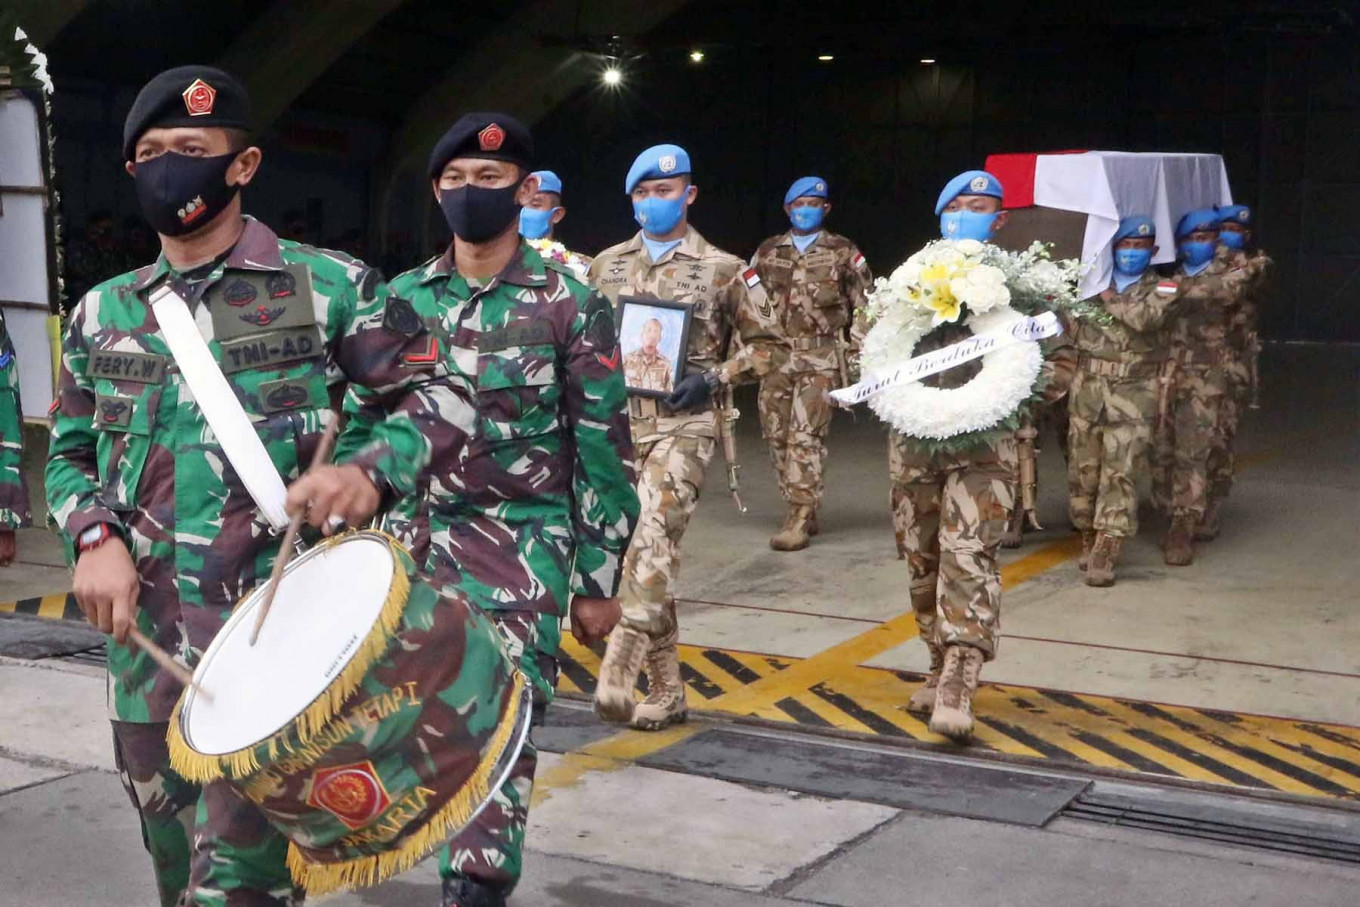 Soldiers carry the coffin and portrait of Sgt. Maj. Rama Wahyudi at Halim Perdanakusuma Air Force Base in East Jakarta on July 3. Rama died on June 22 after being shot during his peacekeeping mission with the United Nations Organization Stabilization Mission in the Democratic Republic of the Congo (MONUSCO). JP/Dhoni Setiawan